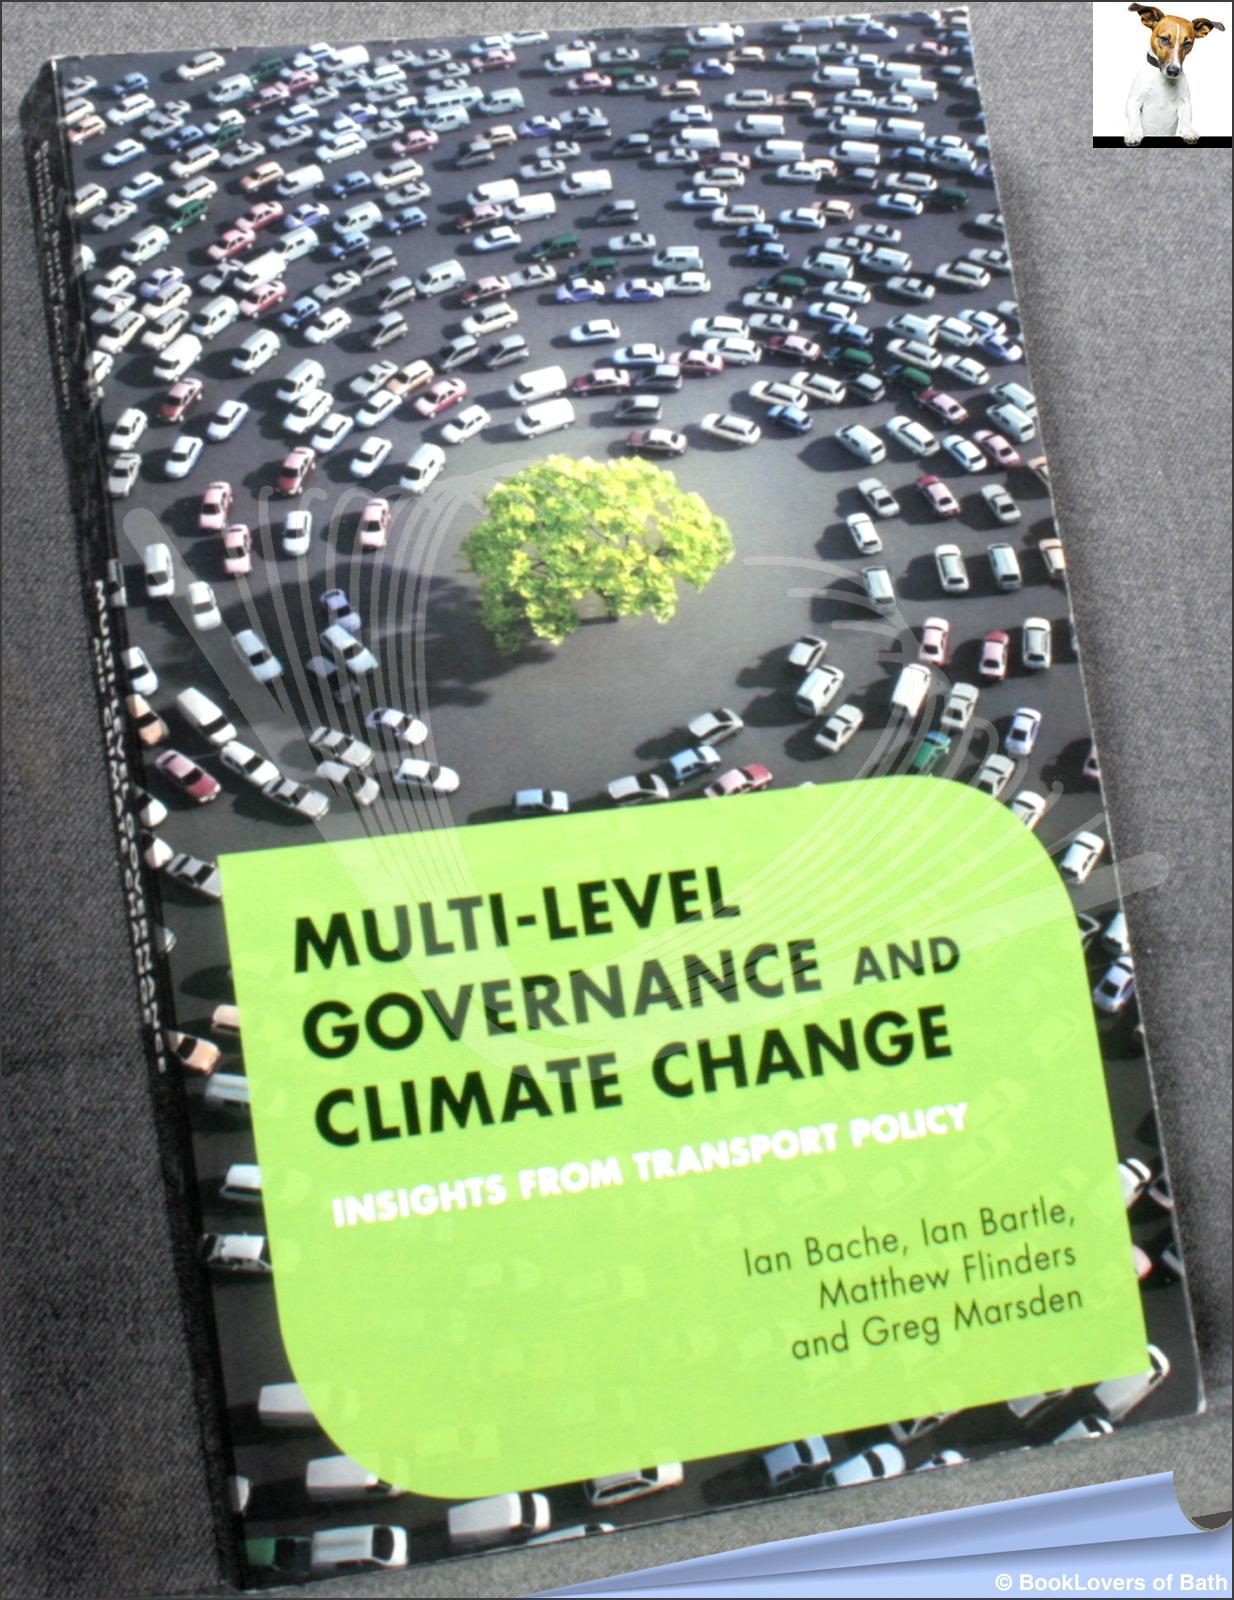 Multi-level Governance and Climate Change: Insights from Transport Policy - Ian Bache, Ian Bartle, Matthew Flinders & Greg Marsden